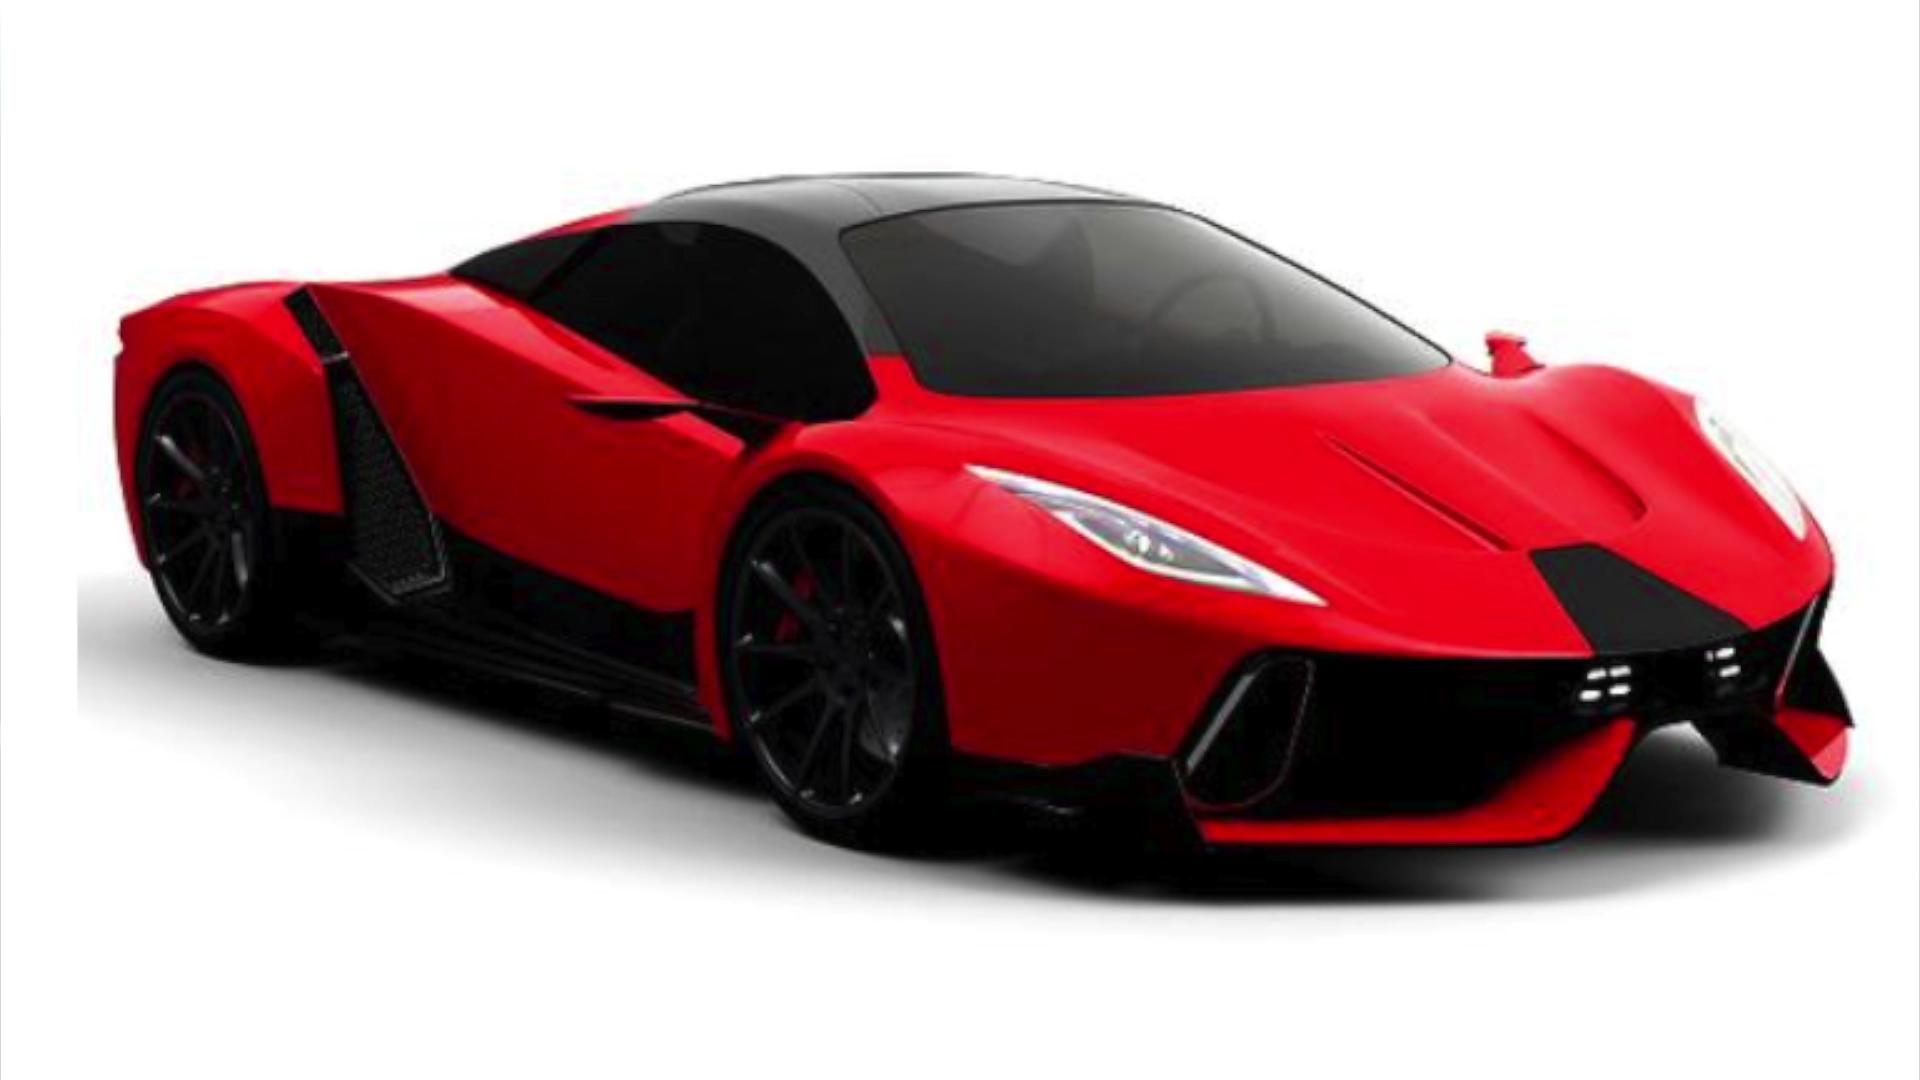 American start-up promises 1700-hp hybrid supercar